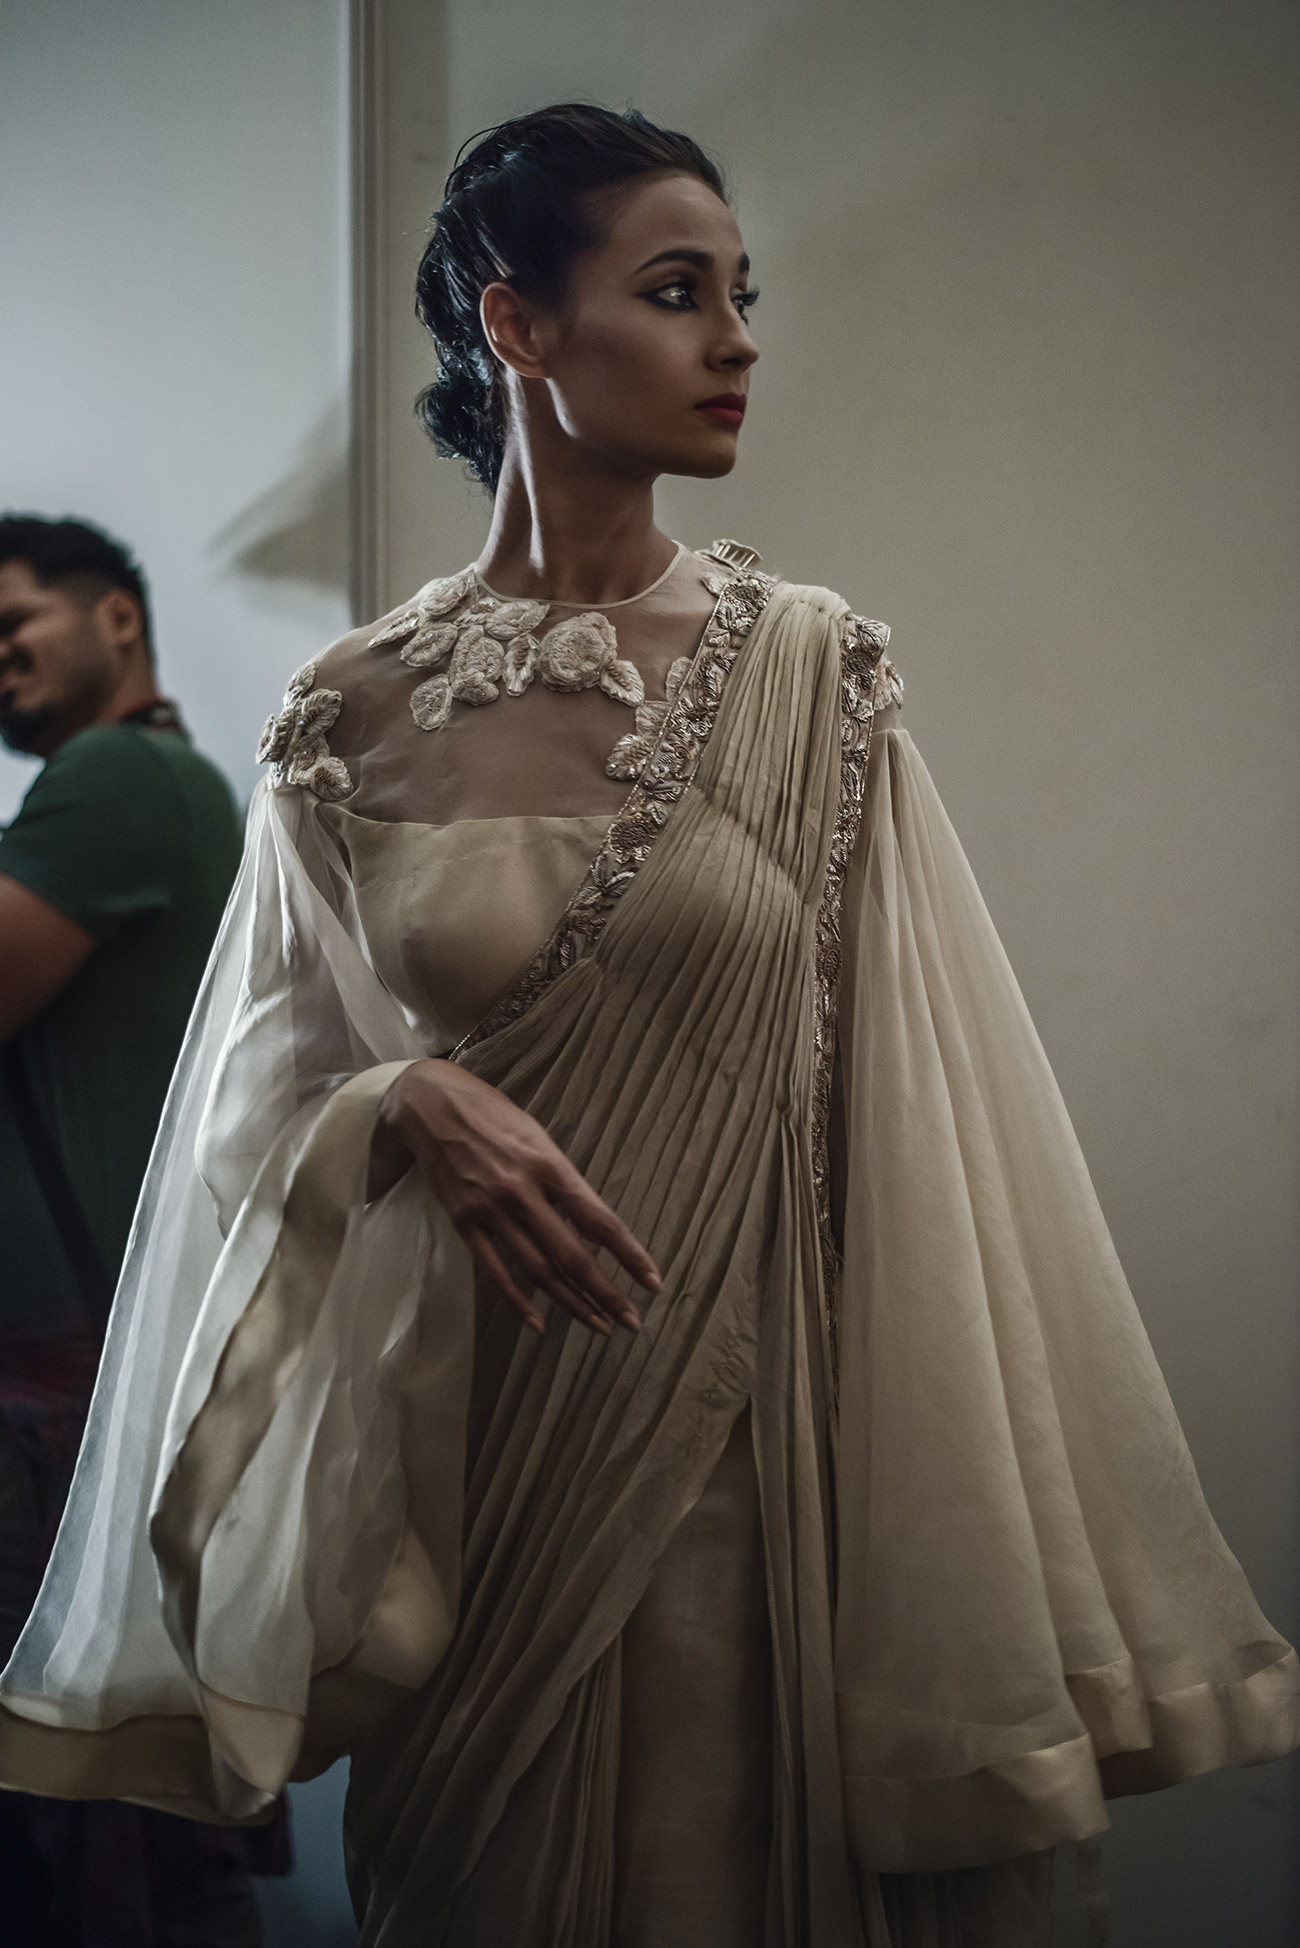 Backstage FDCI India Couture Week 2016 Photo by RAWKY KSH 8